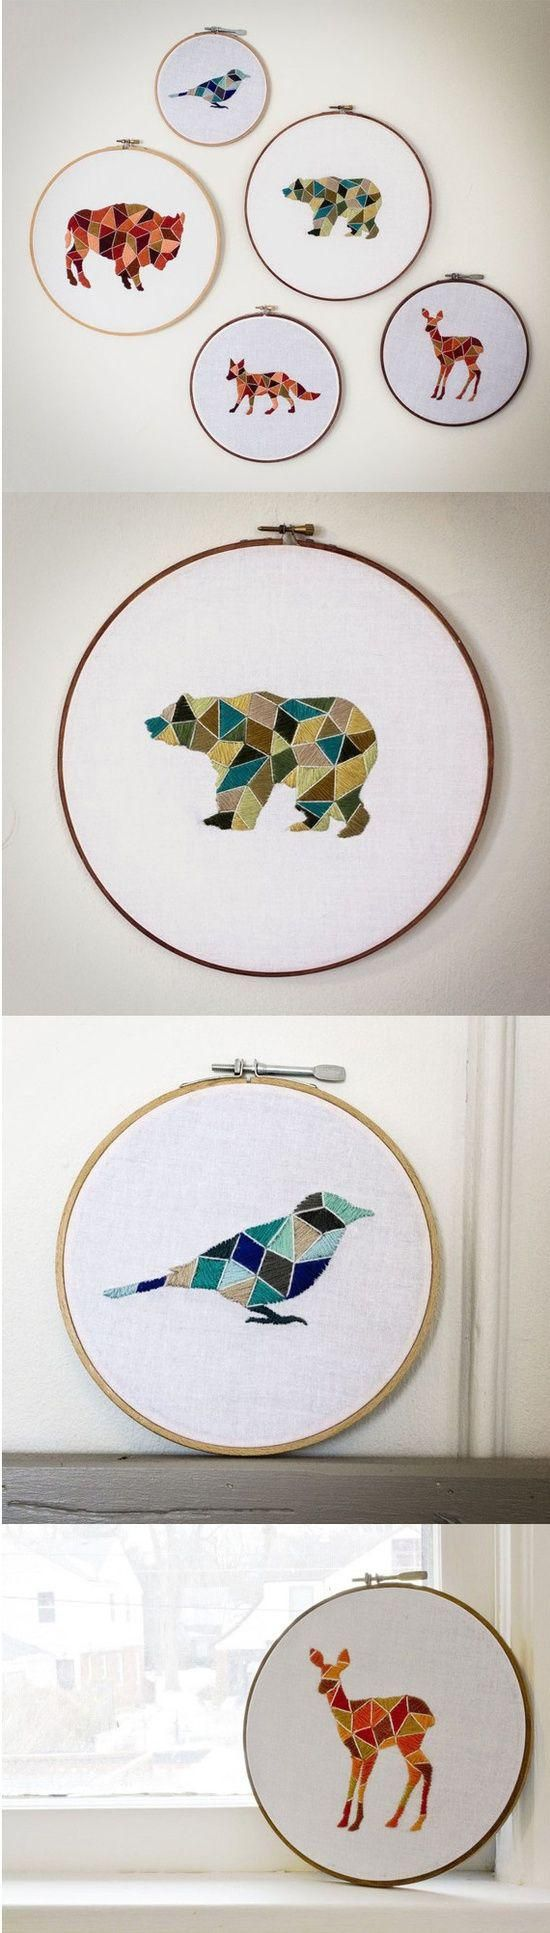 Love the quilt pieced look of the animals.  Also could be actually pieced or just fused with fabric.